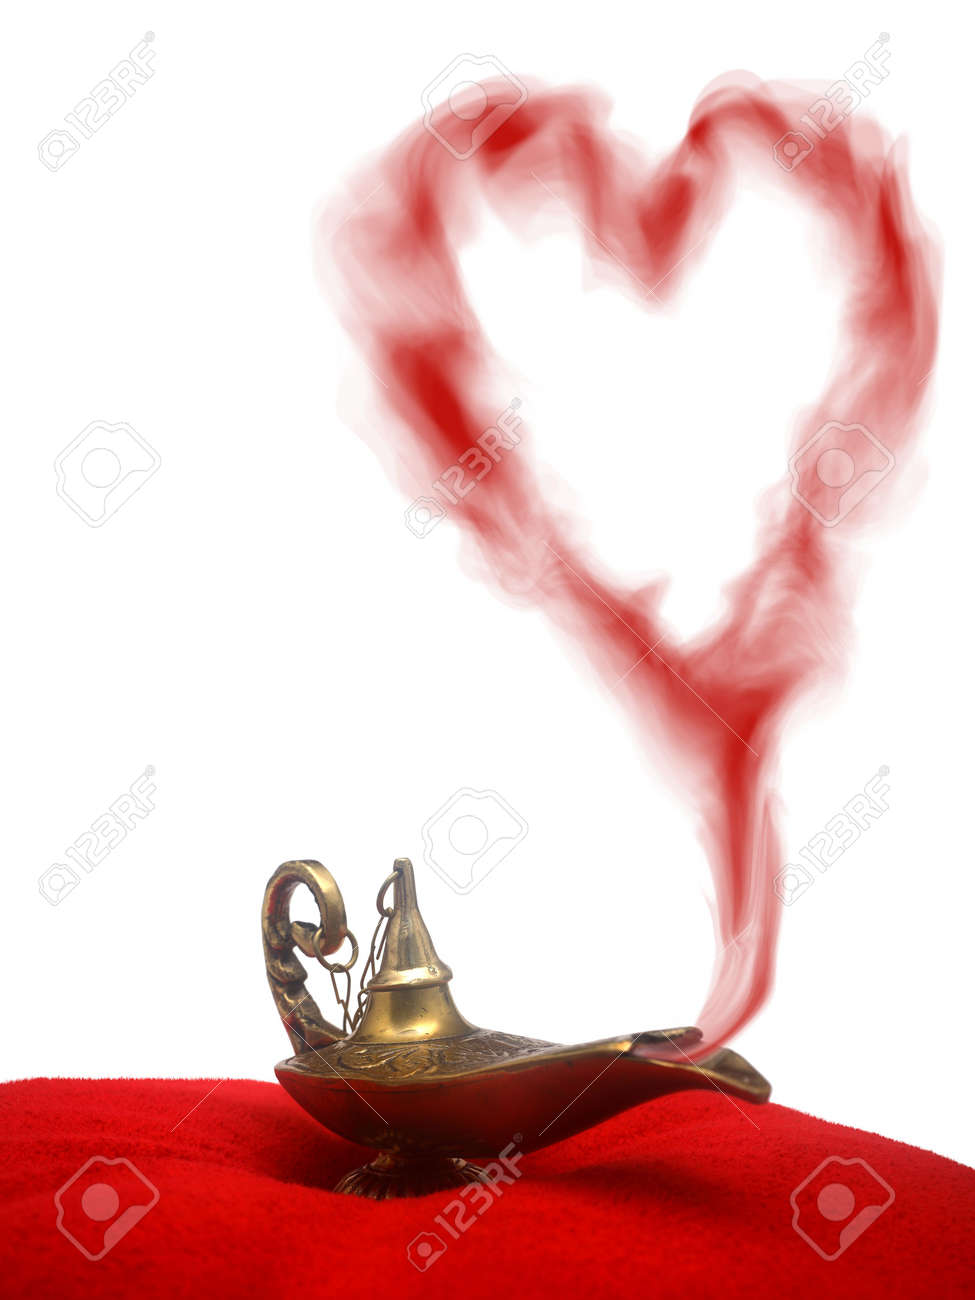 Genie lamp stock photos pictures royalty free genie - A Magical Genie Lamp With Smoke On A Red Velvet Pillow With A Heart Shaped Smoke